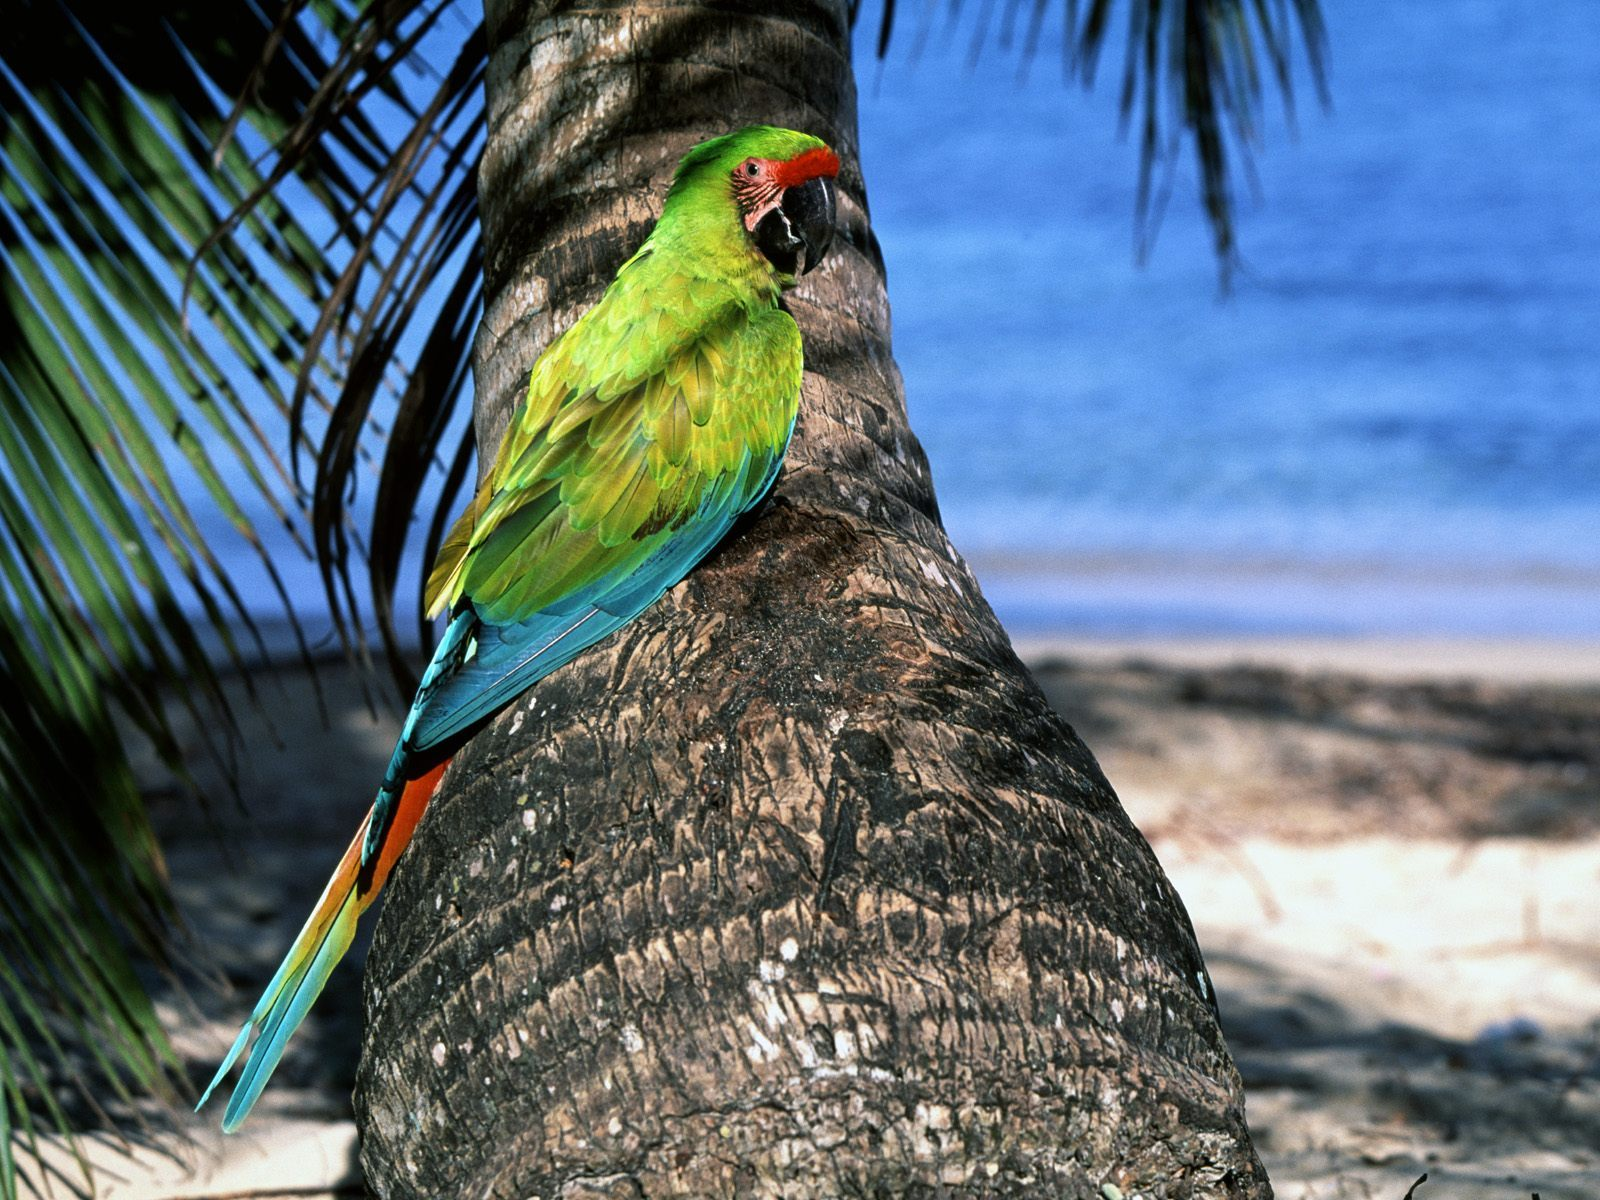 15732 download wallpaper Animals, Birds, Parrots screensavers and pictures for free